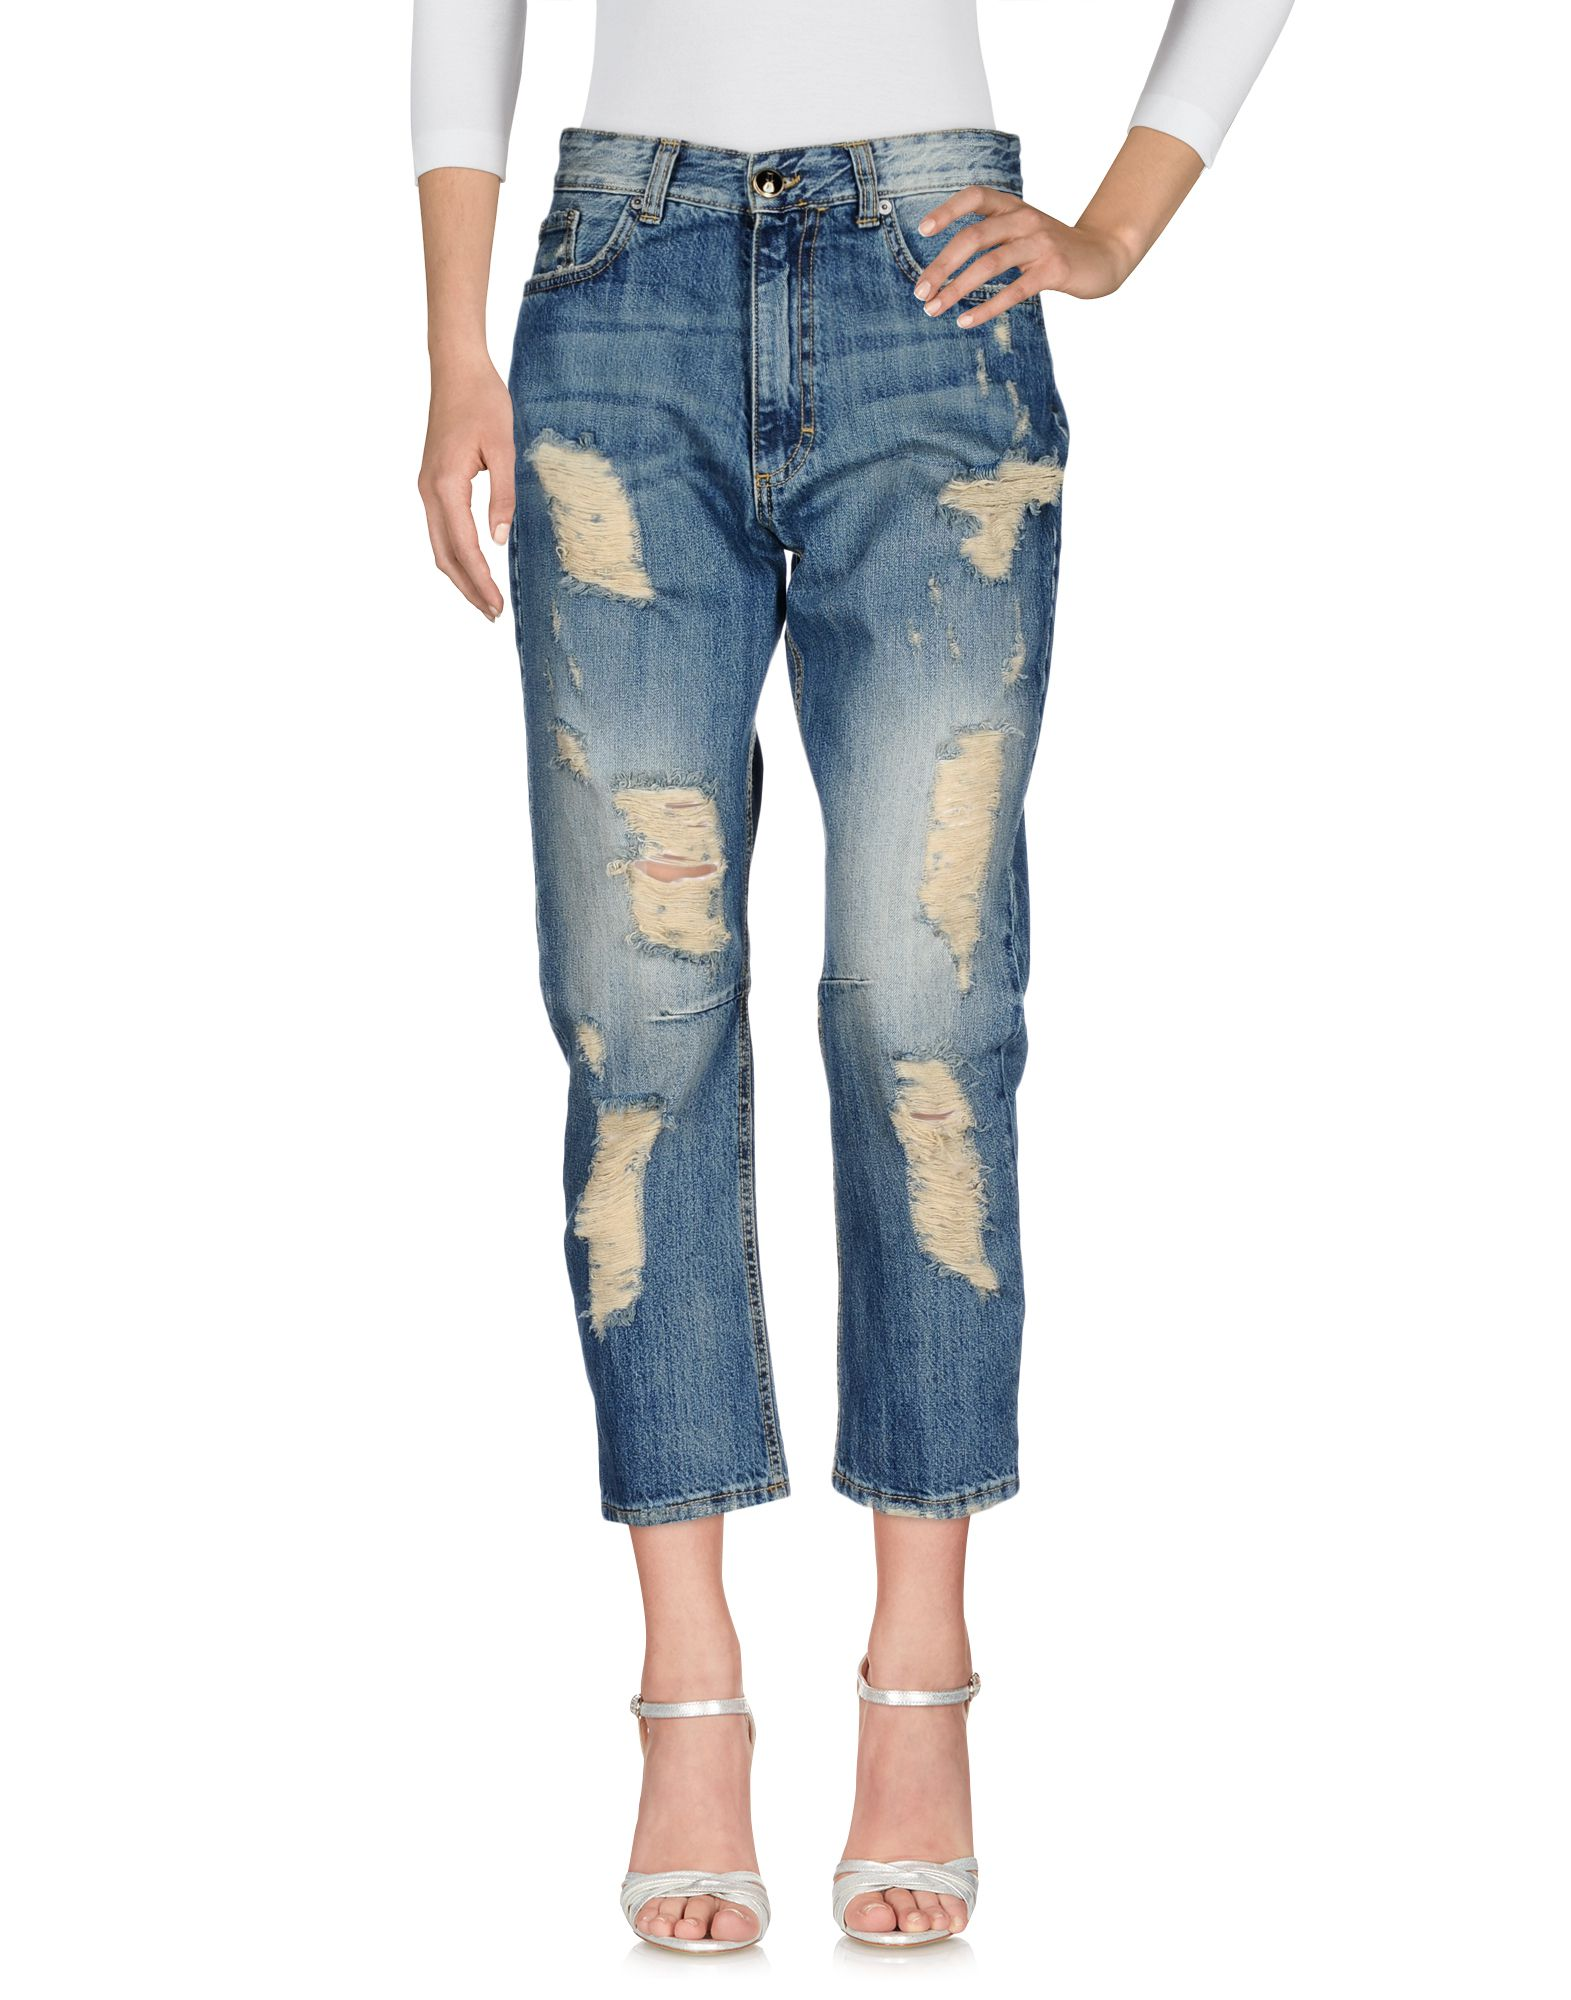 DENIM - Denim bermudas Aniye By